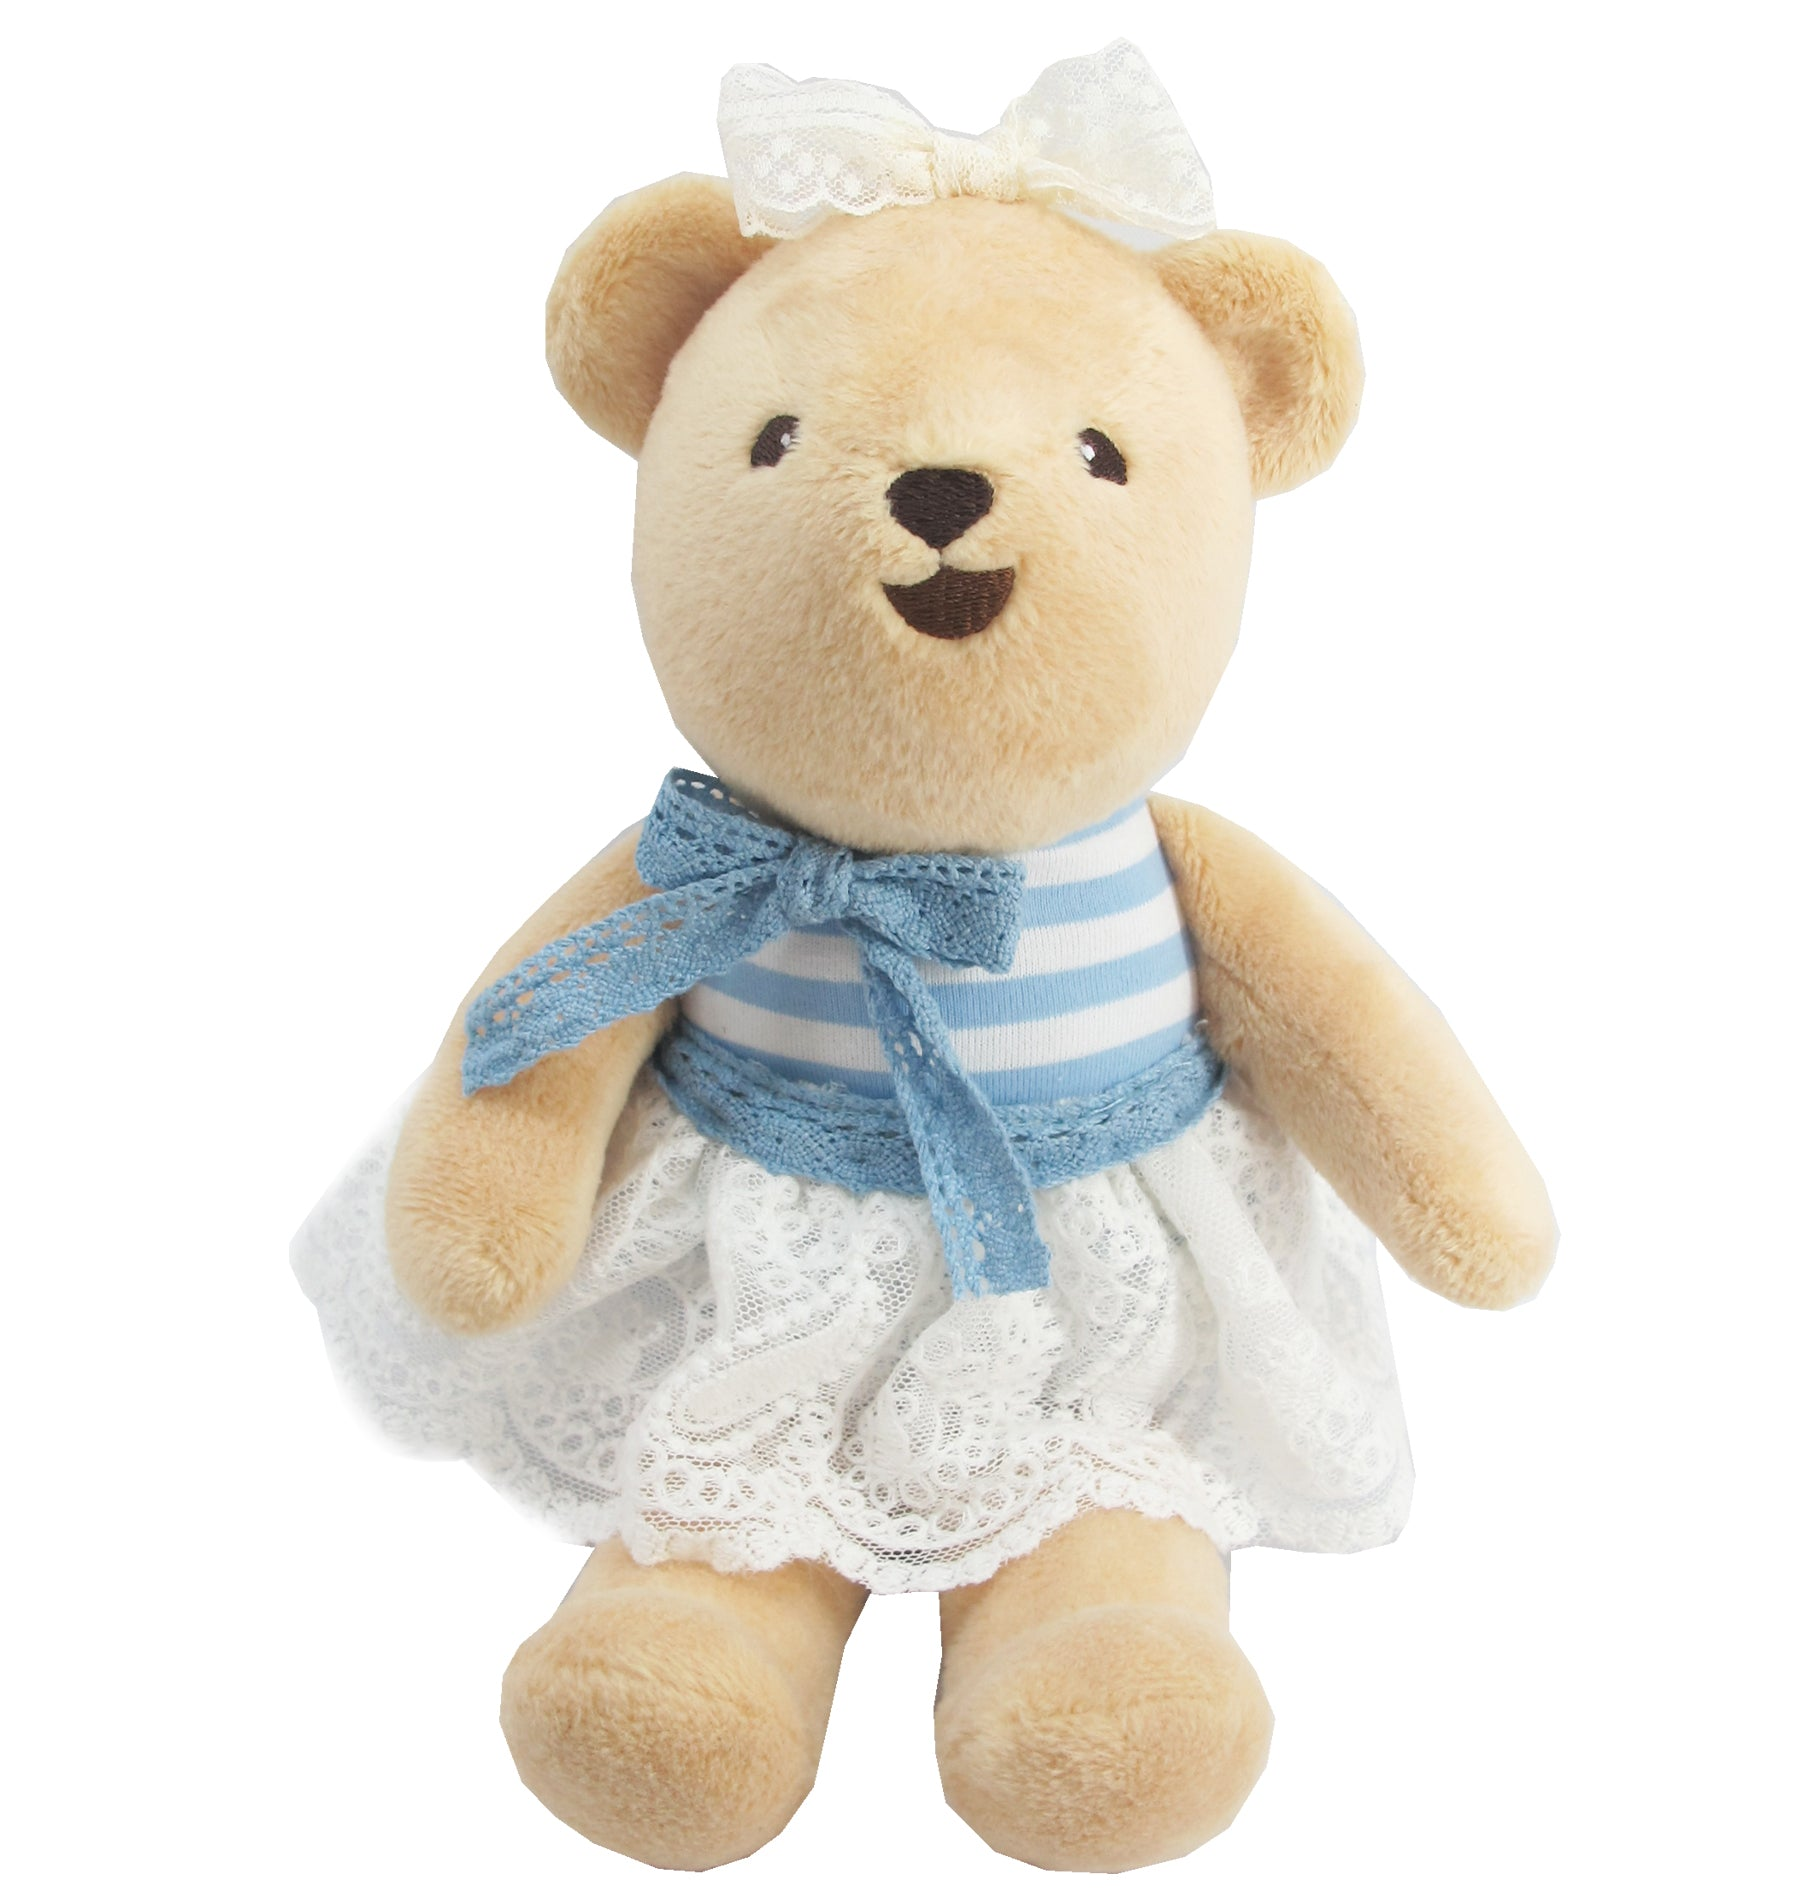 BEAR WITH OUTFITS GIRL (BLUE) 10 INCHI M COLLECTION